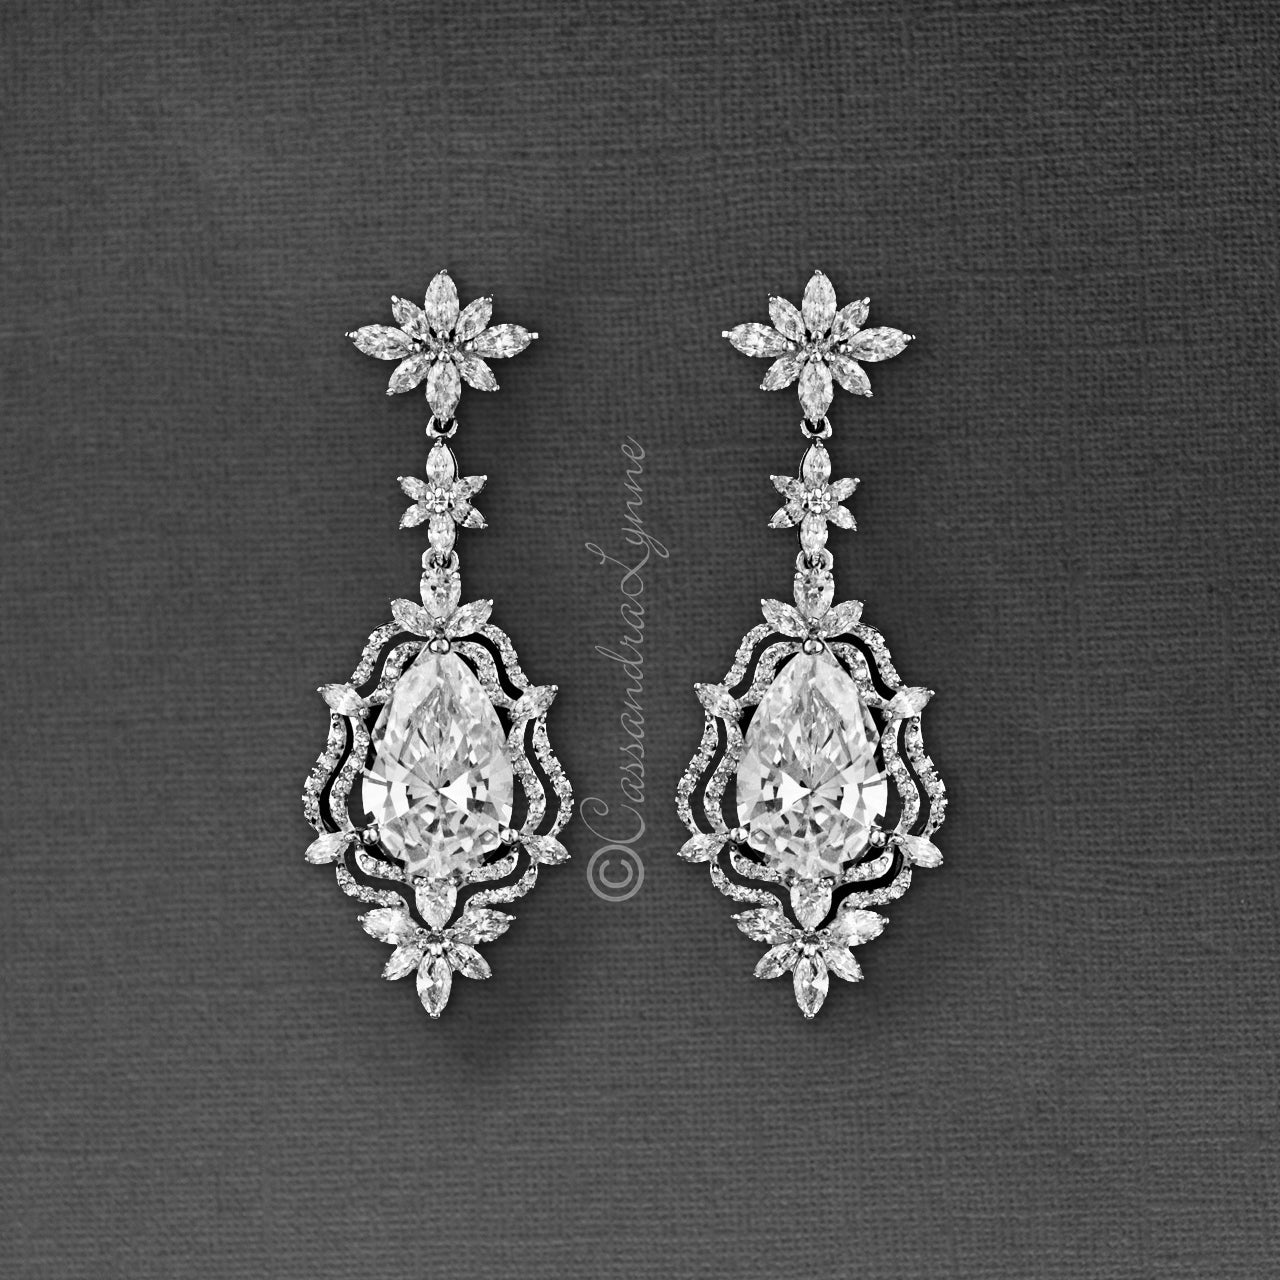 Vintage Bridal Earrings of CZ Pear Stones